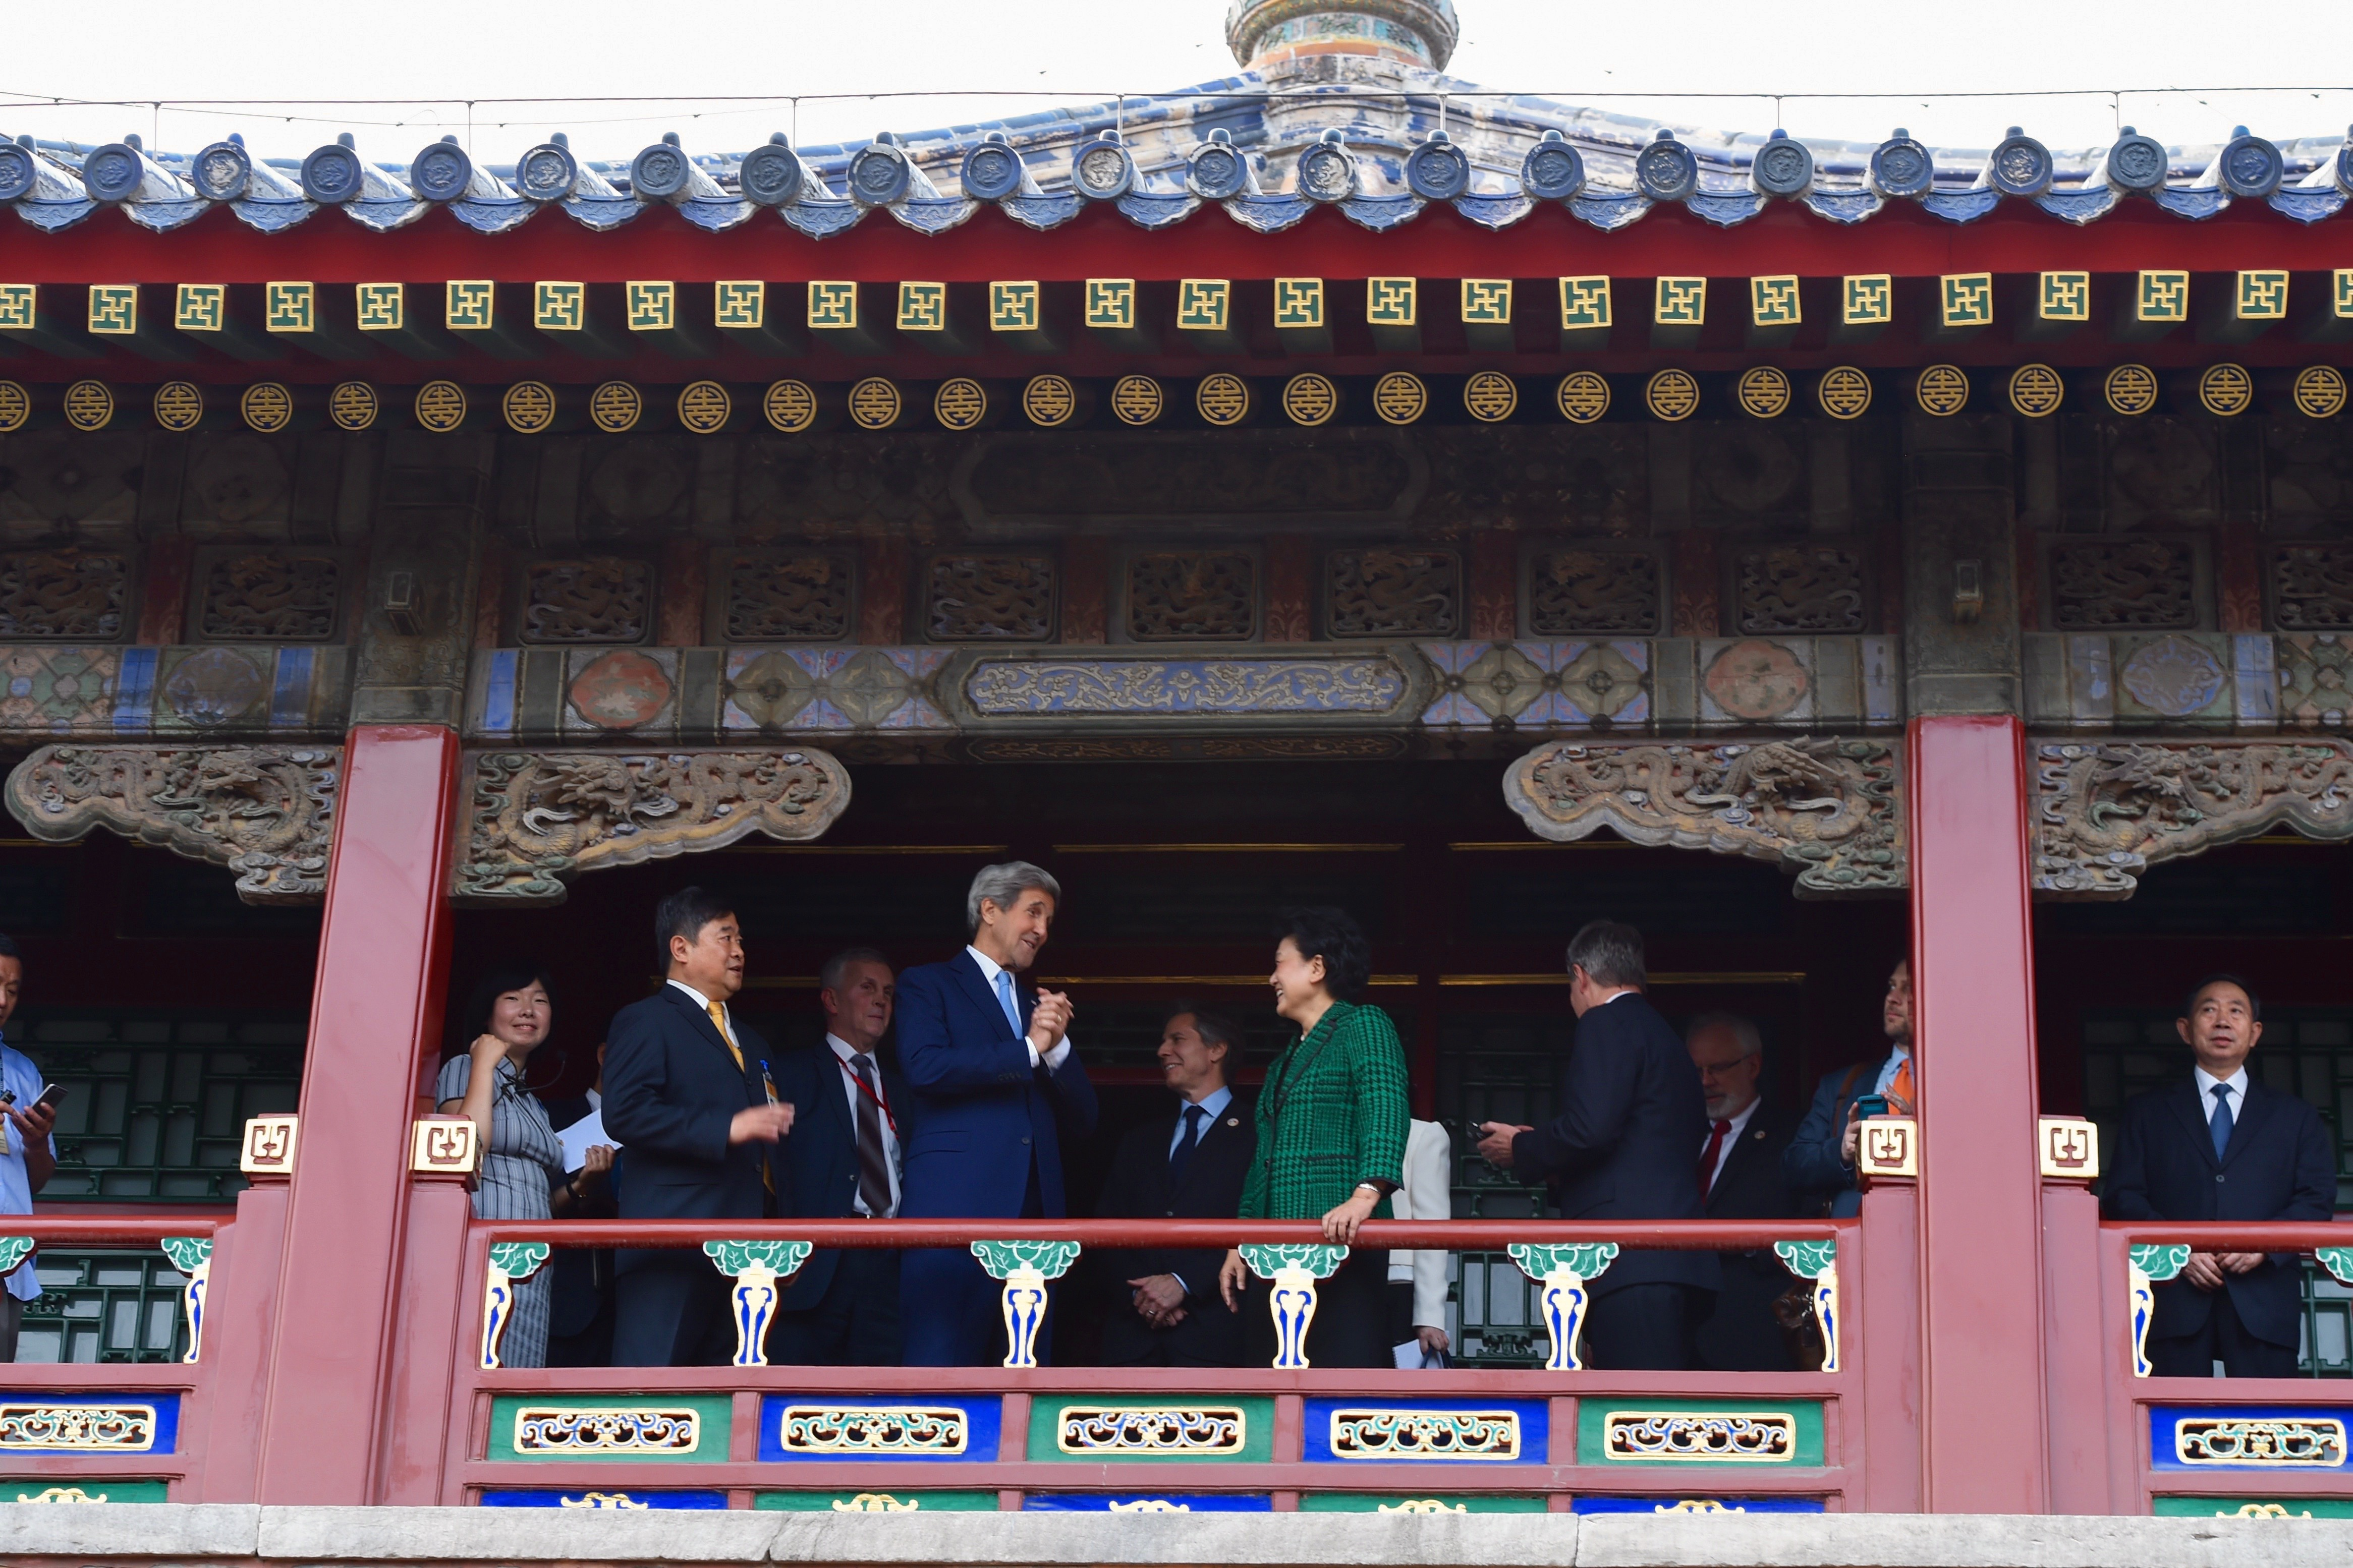 File Secretary Kerry And Chinese Vice Premier Liu Stand In A